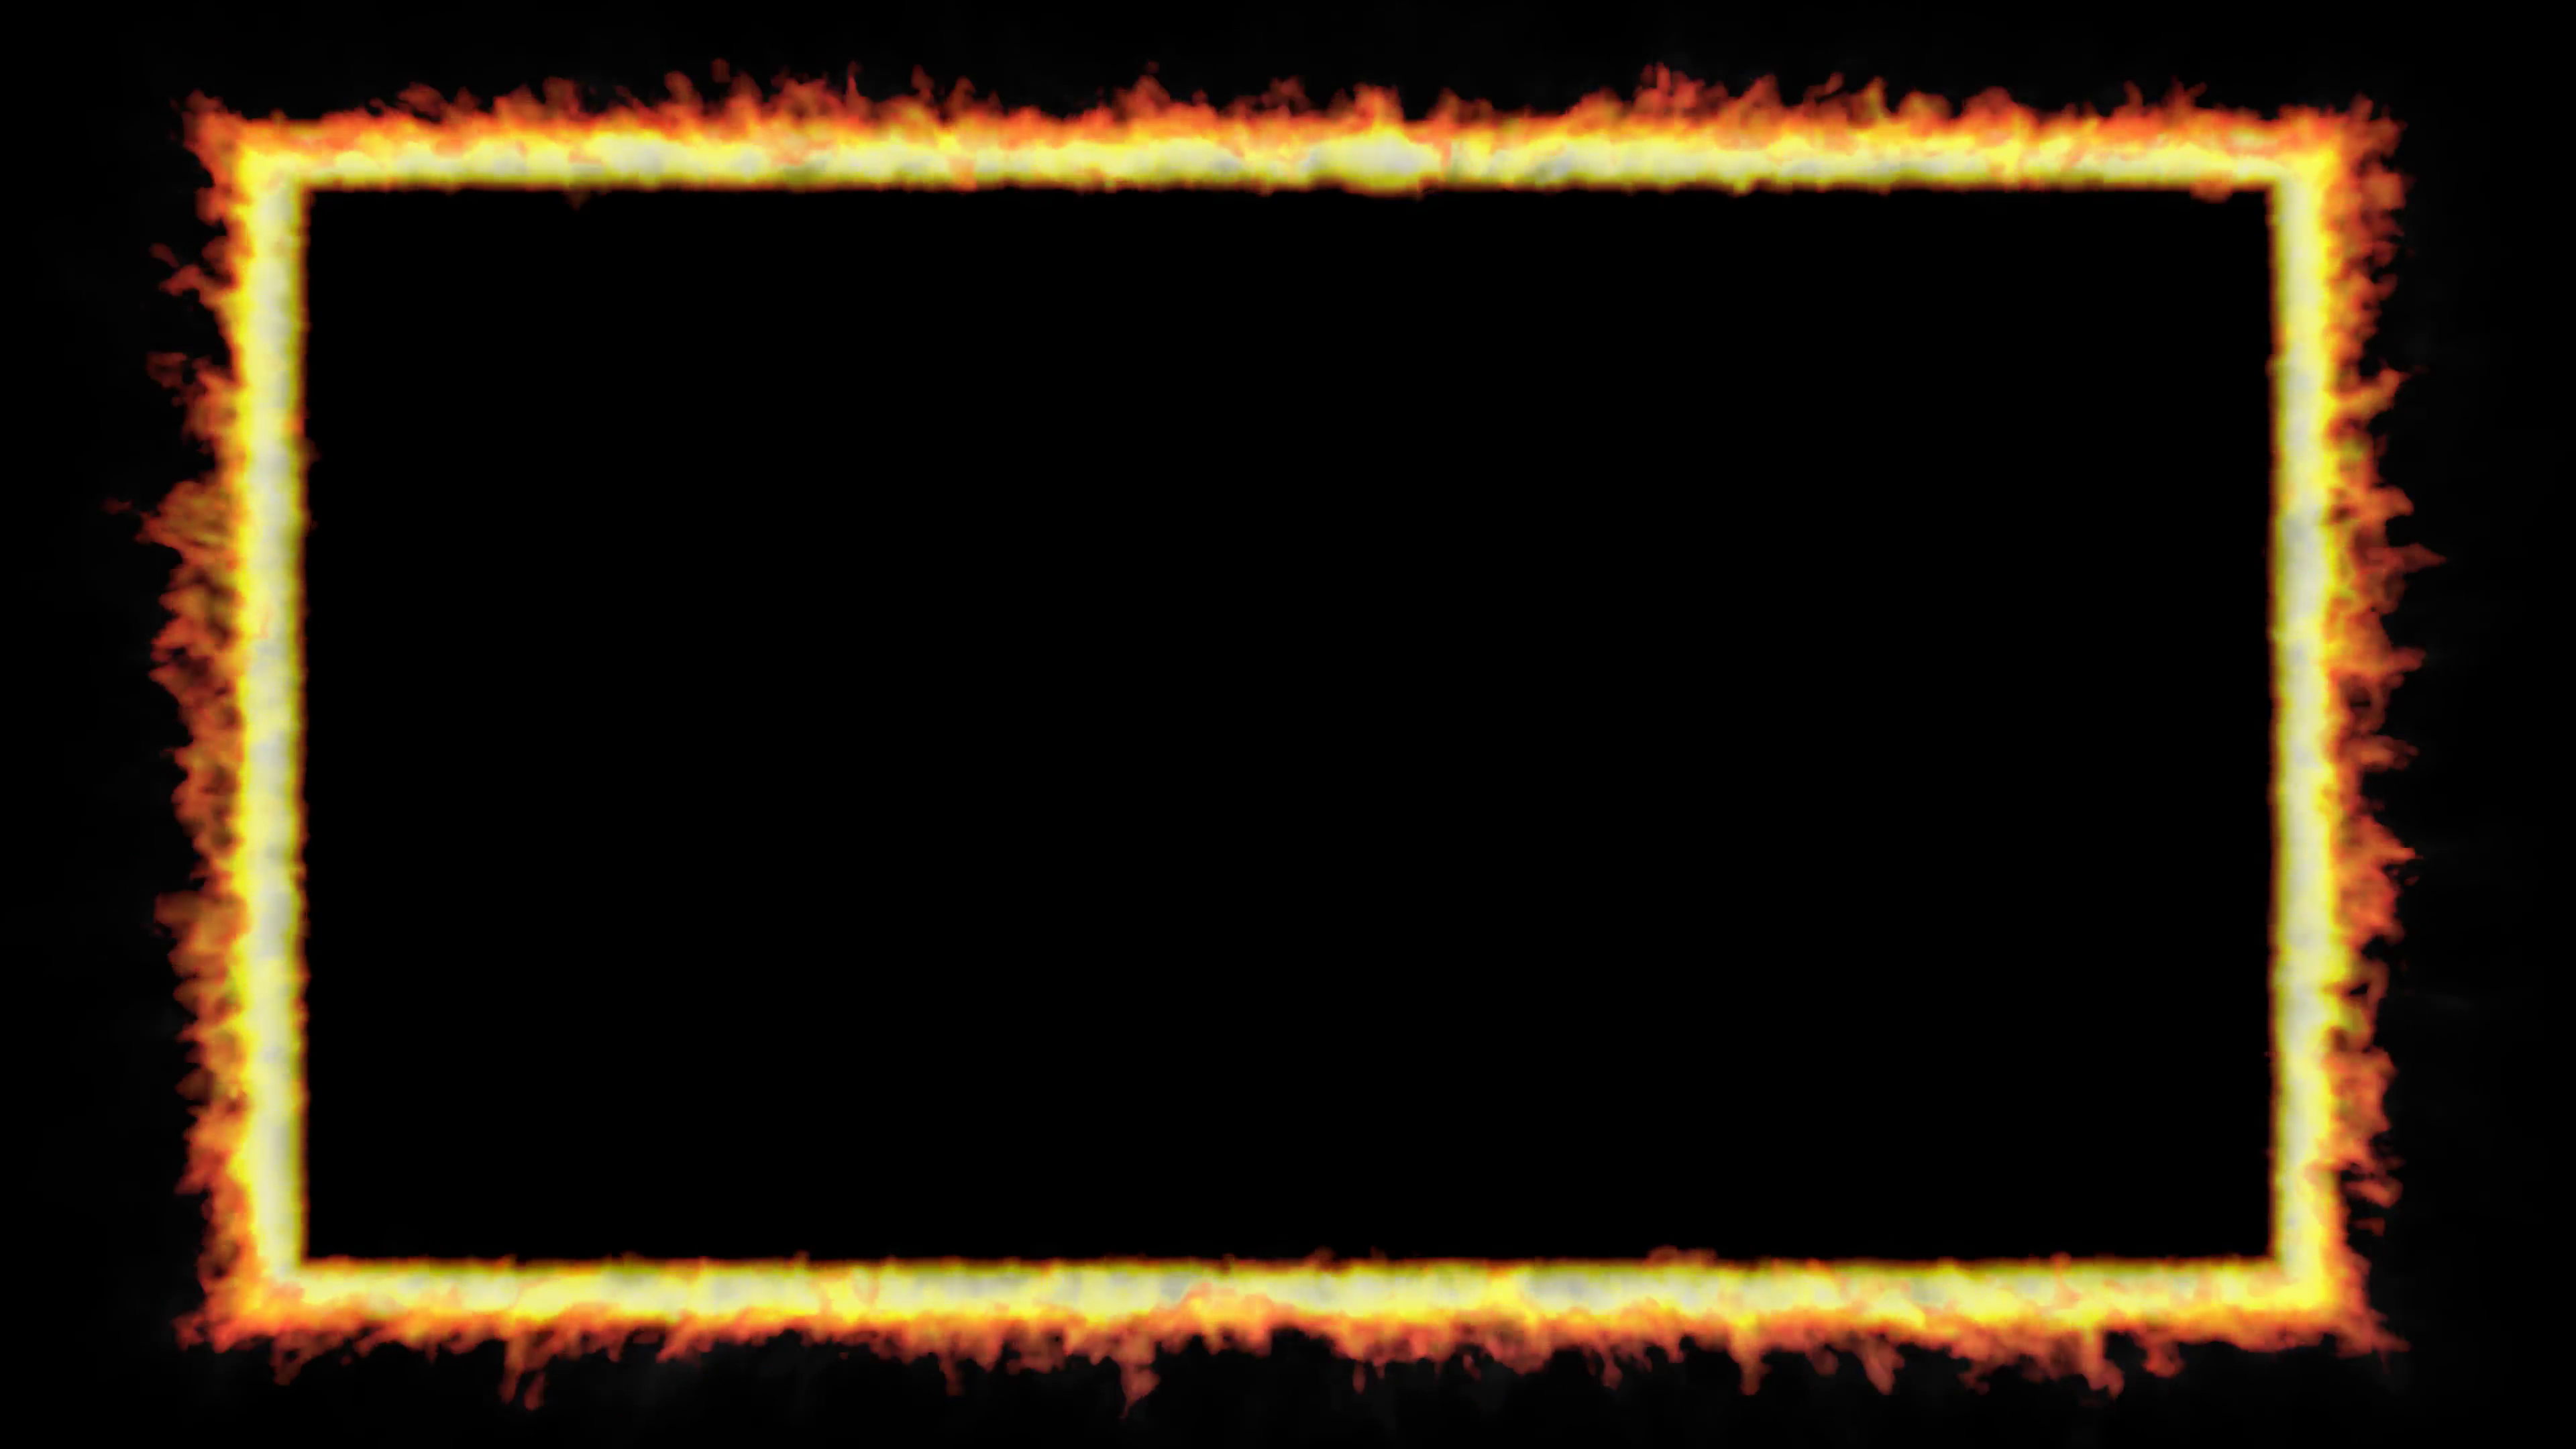 Animated thin rectangular rim, trim, window, border or frame of fire  against transparent background in 4k. Alpha channel embedded with 4k PNG  file..